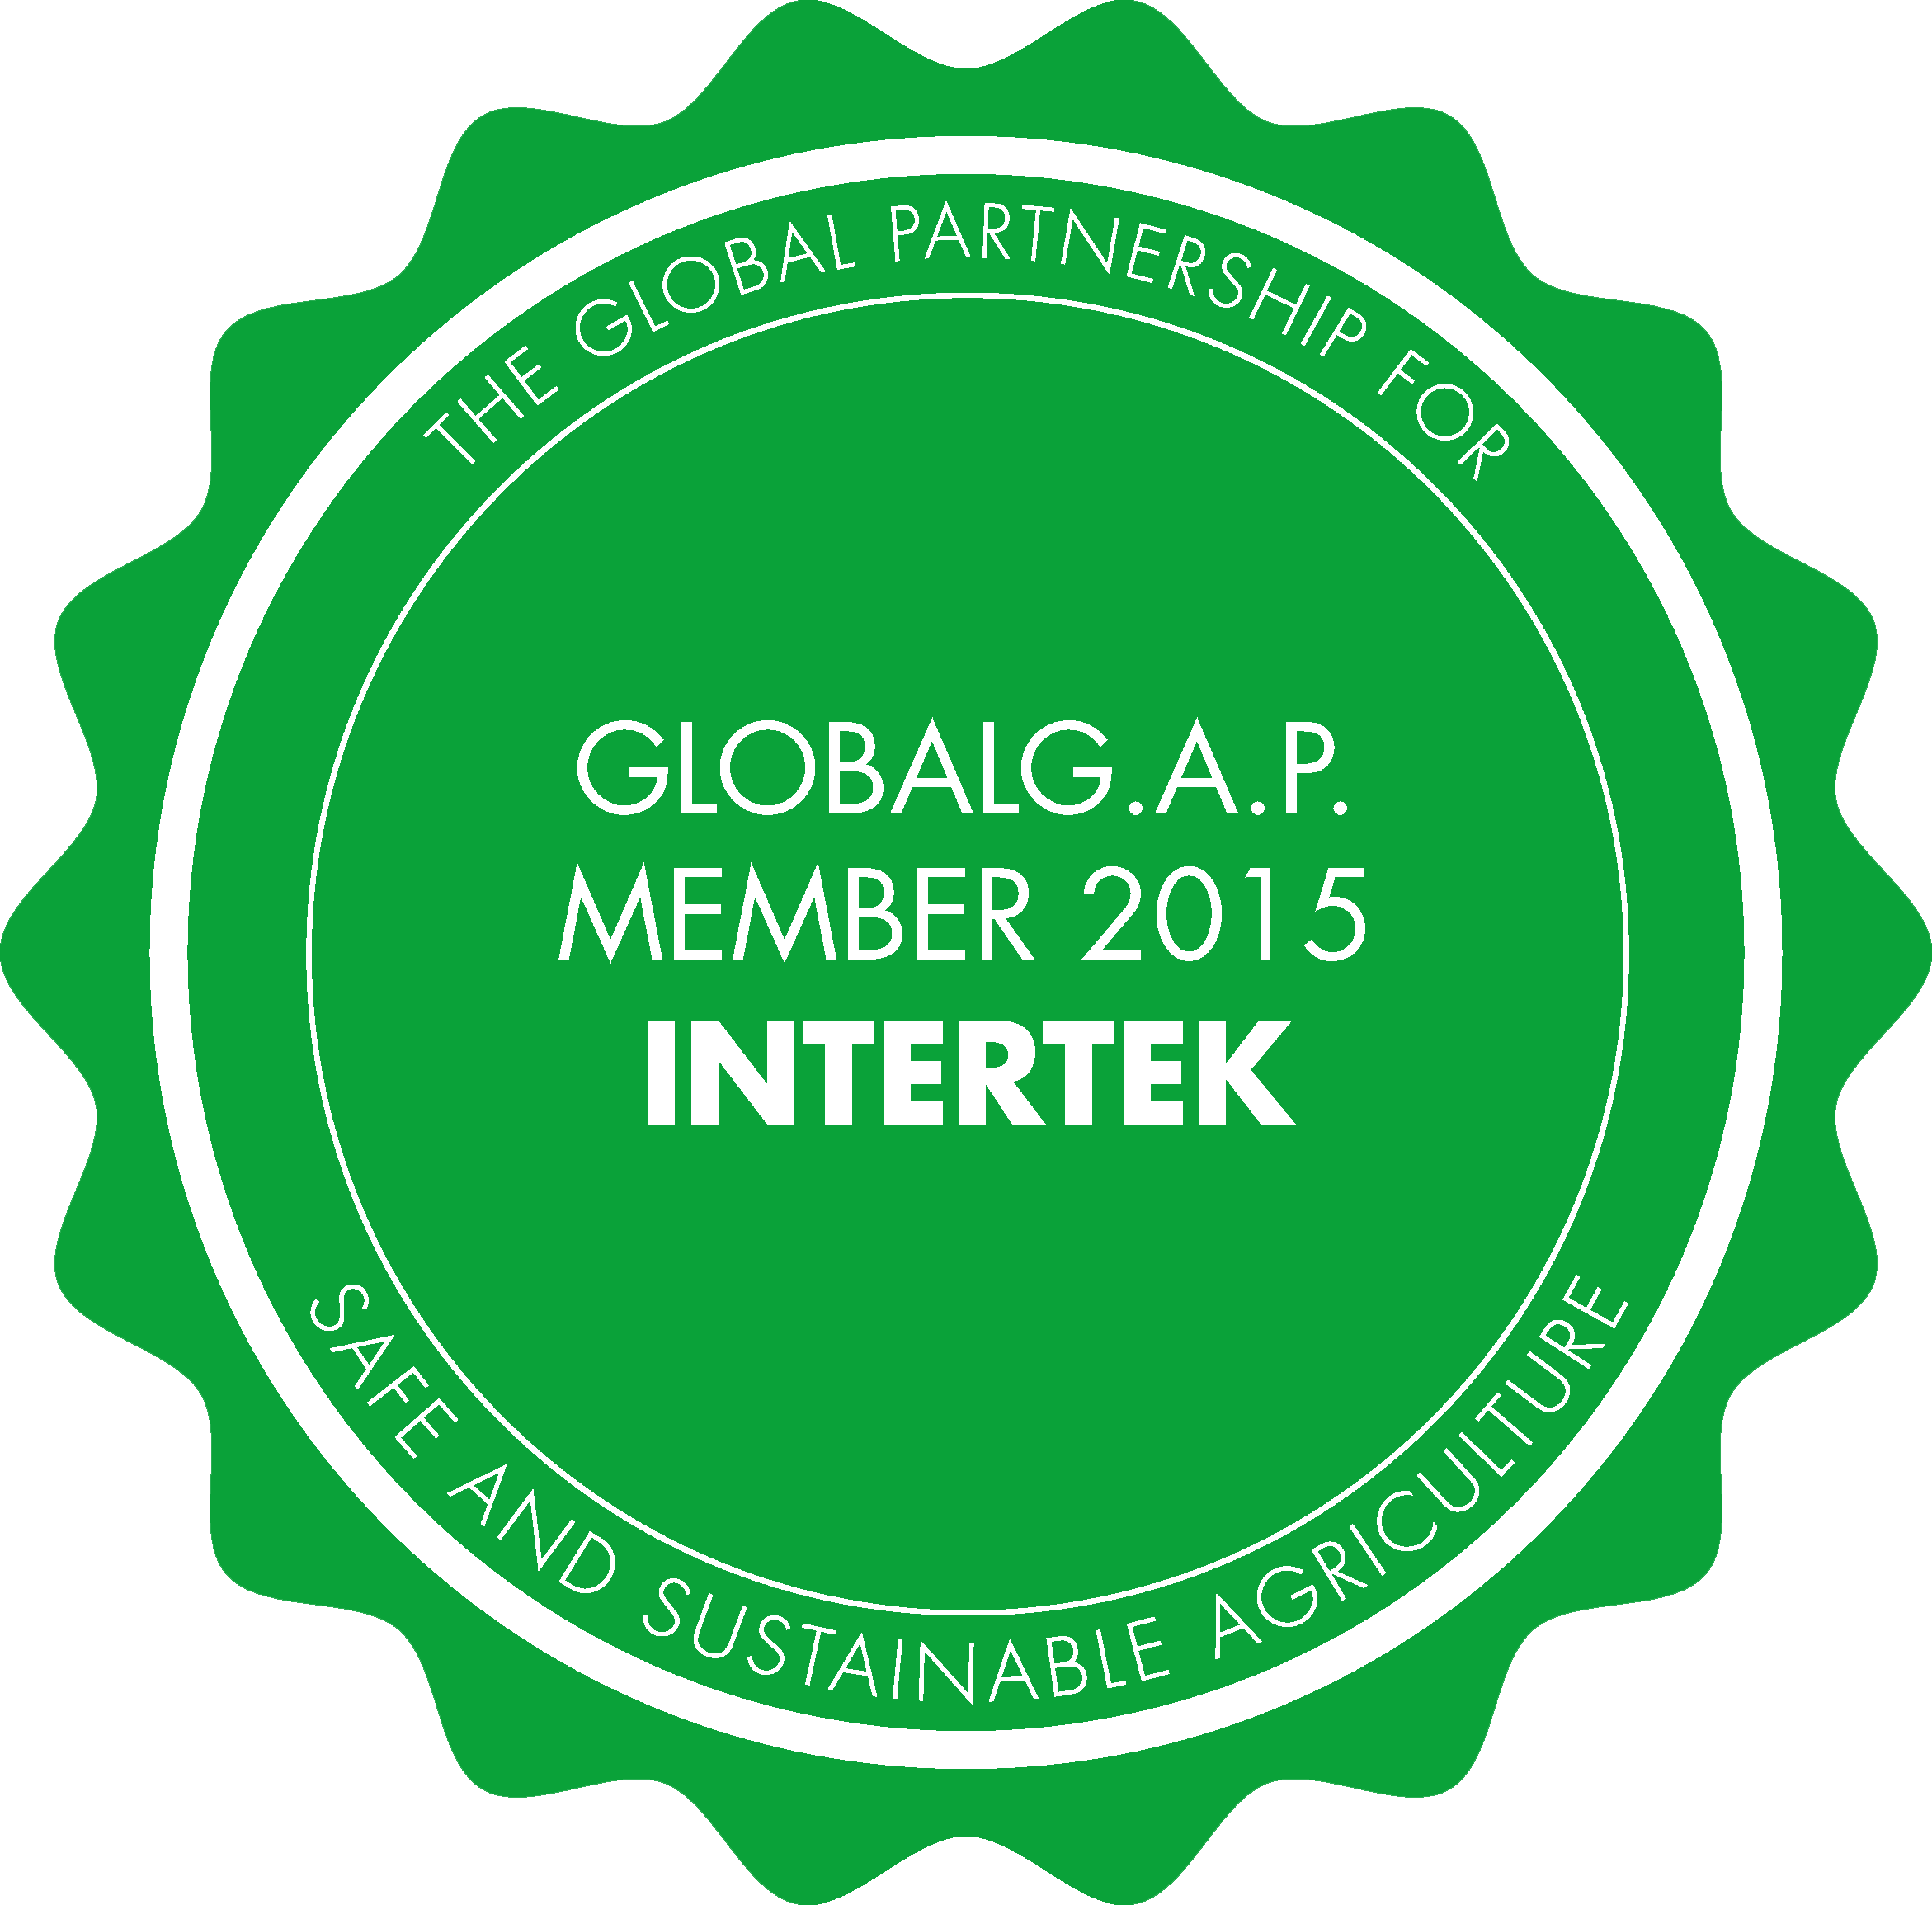 logo GLOBALGAP intertek